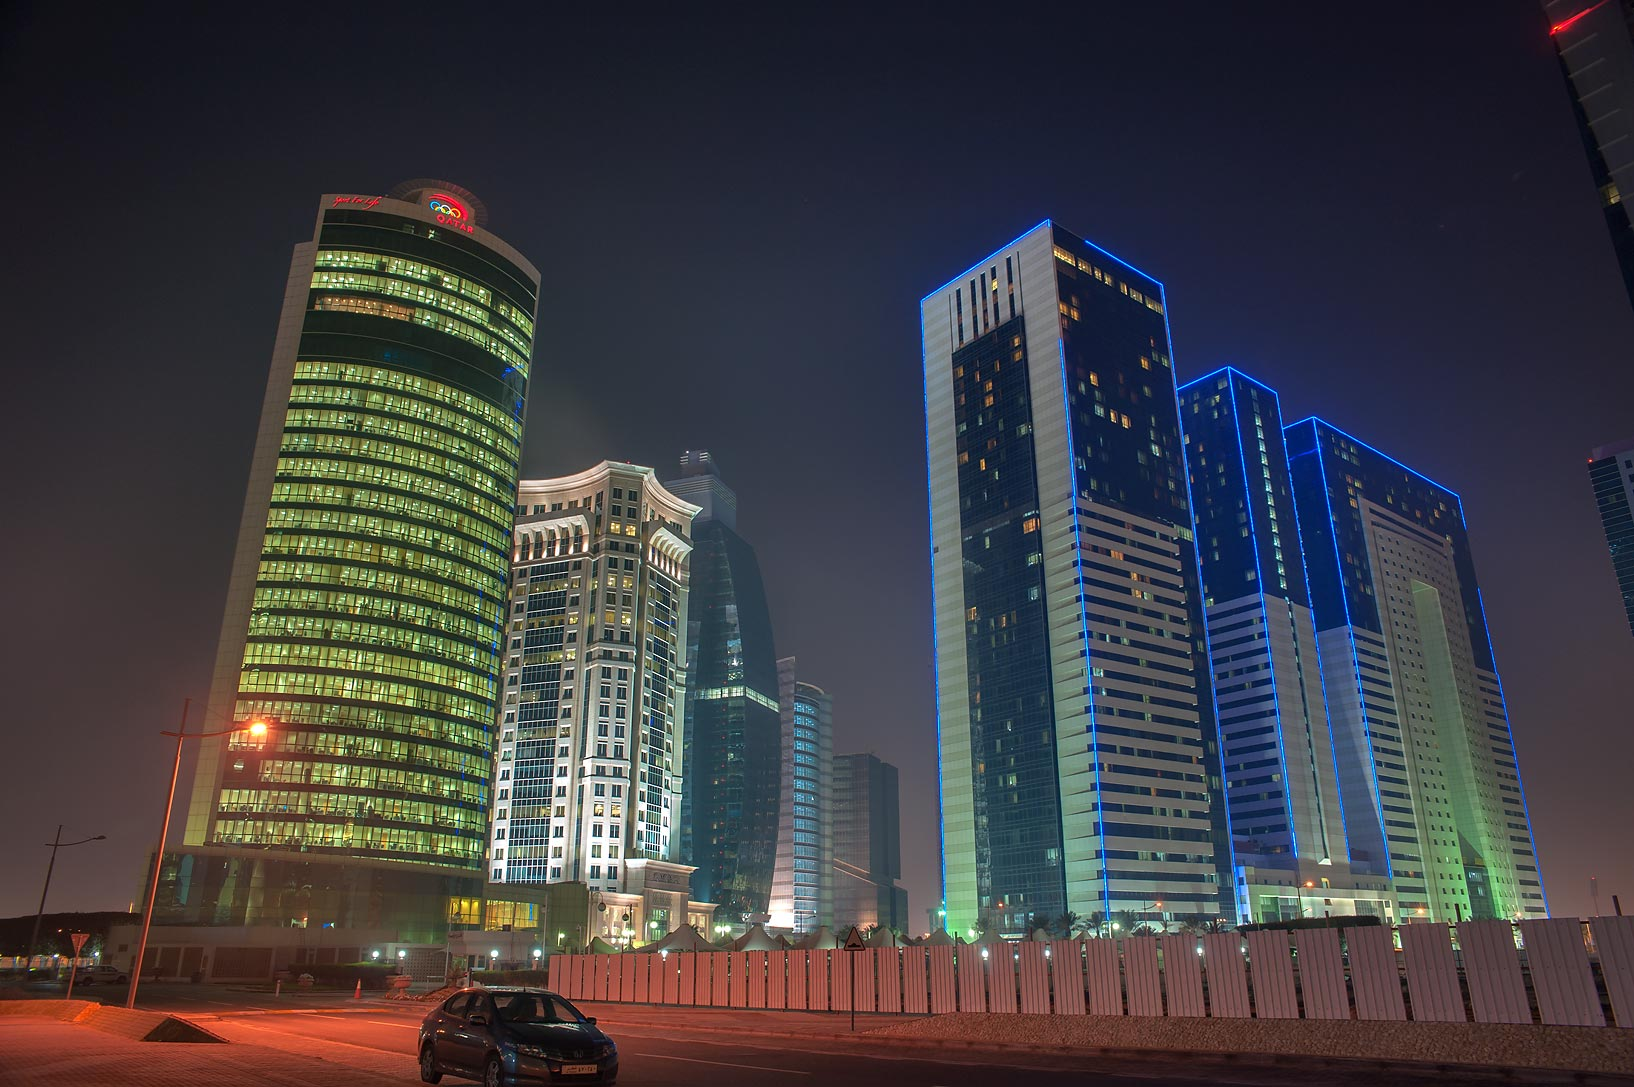 Olympic and Ezdan towers in West Bay. Doha, Qatar